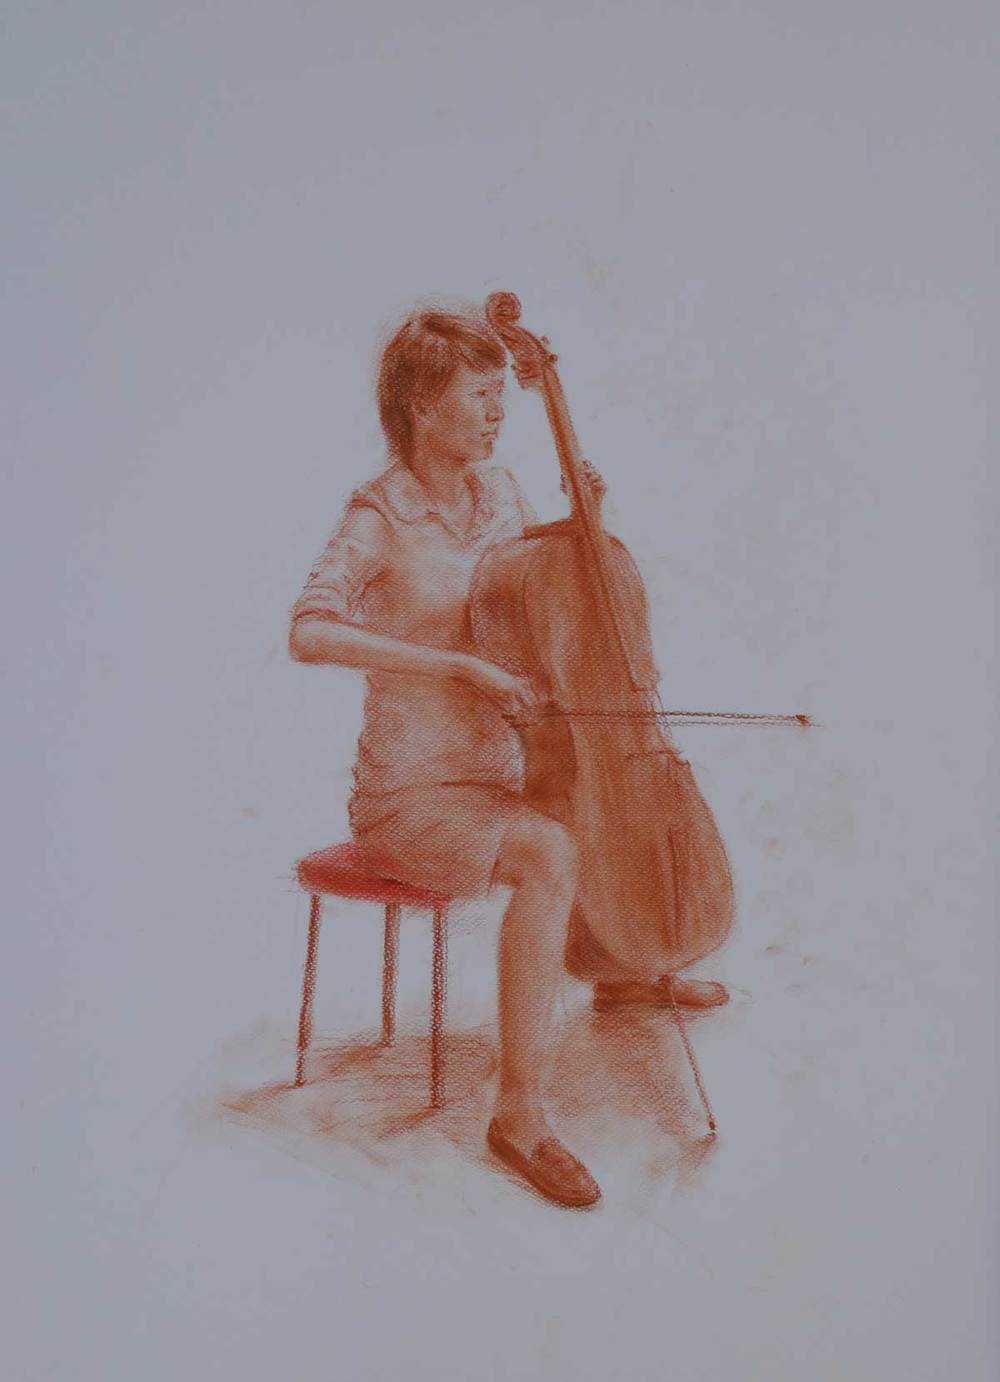 Colored Charcoal. A2 (59.4×42.0 cm) 2014